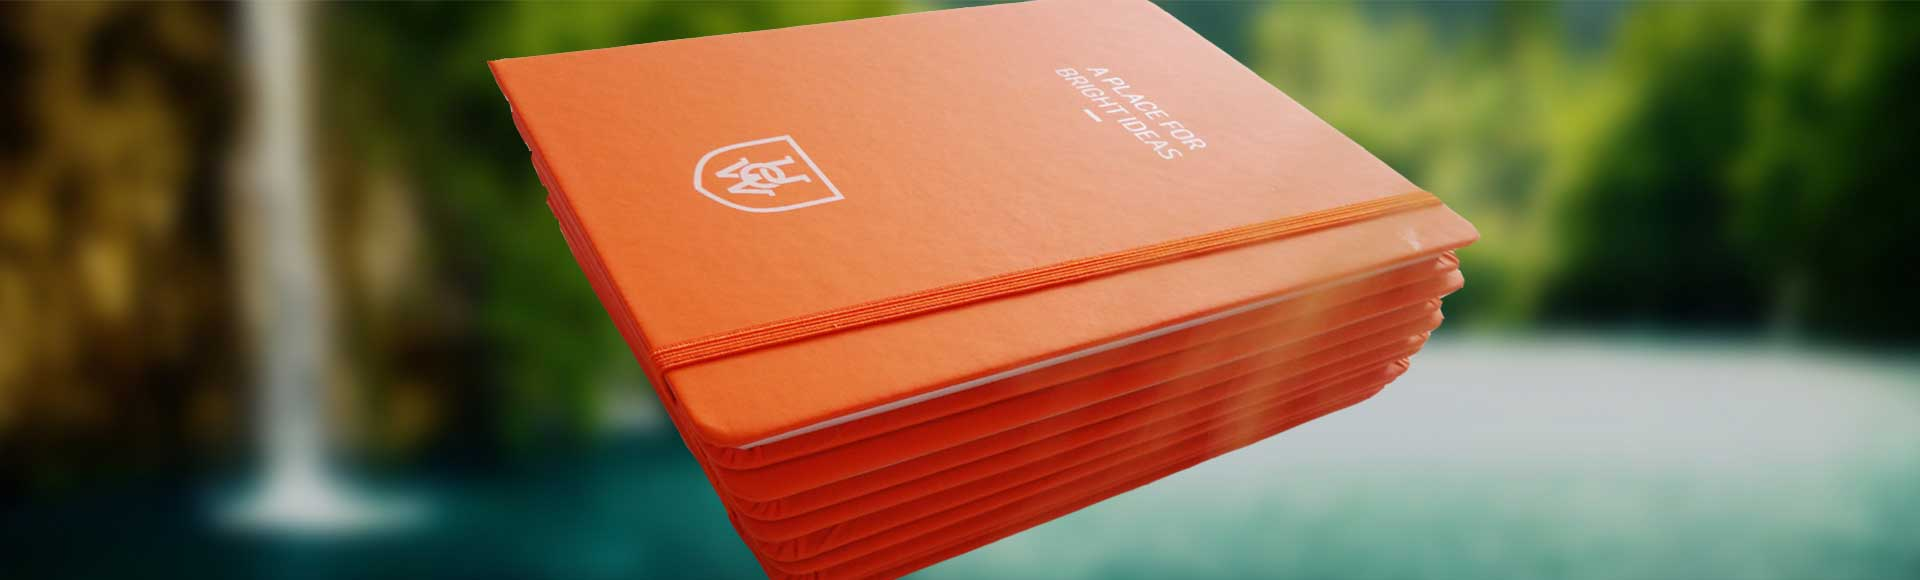 CnDTrends – ADD VALUE TO YOUR BRAND, PROMOTIONAL ITEMS